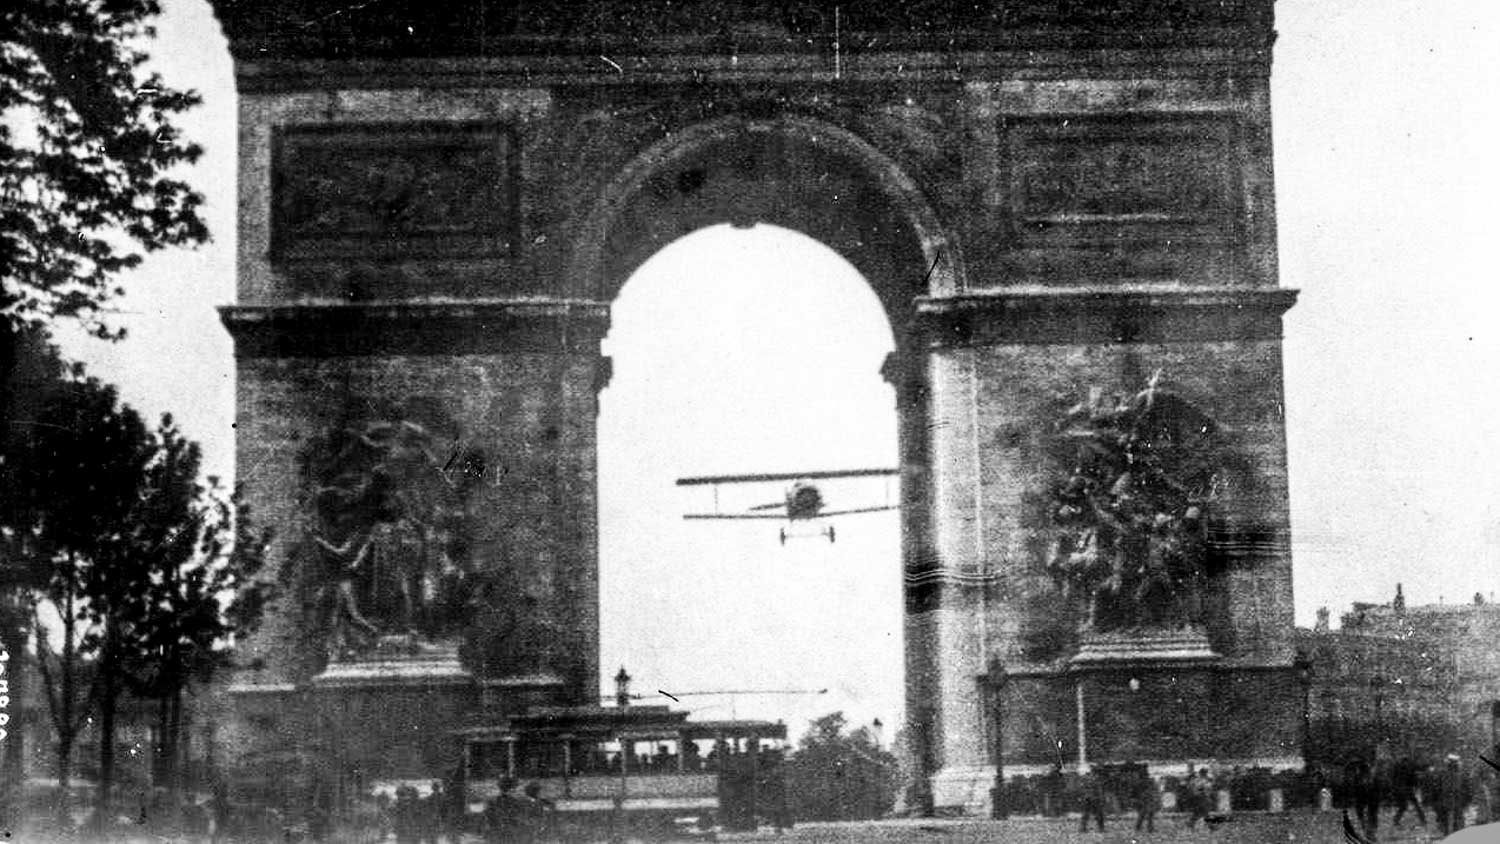 A plane was flown through it in 1919!